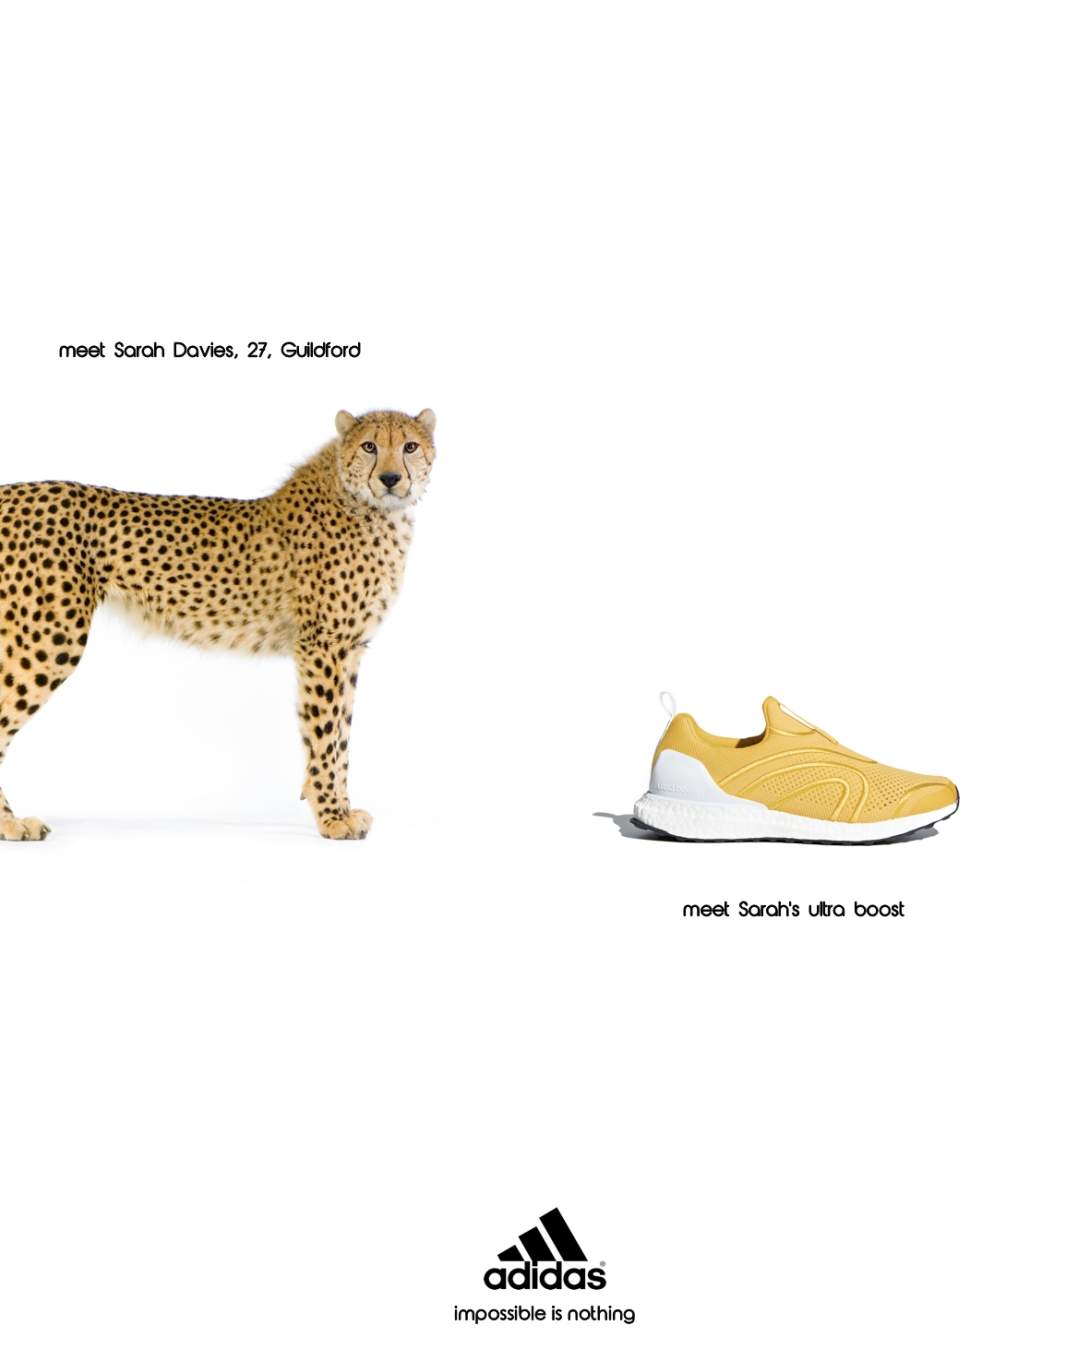 advertising concept for a running shoe brand - sarah davies, cheetah